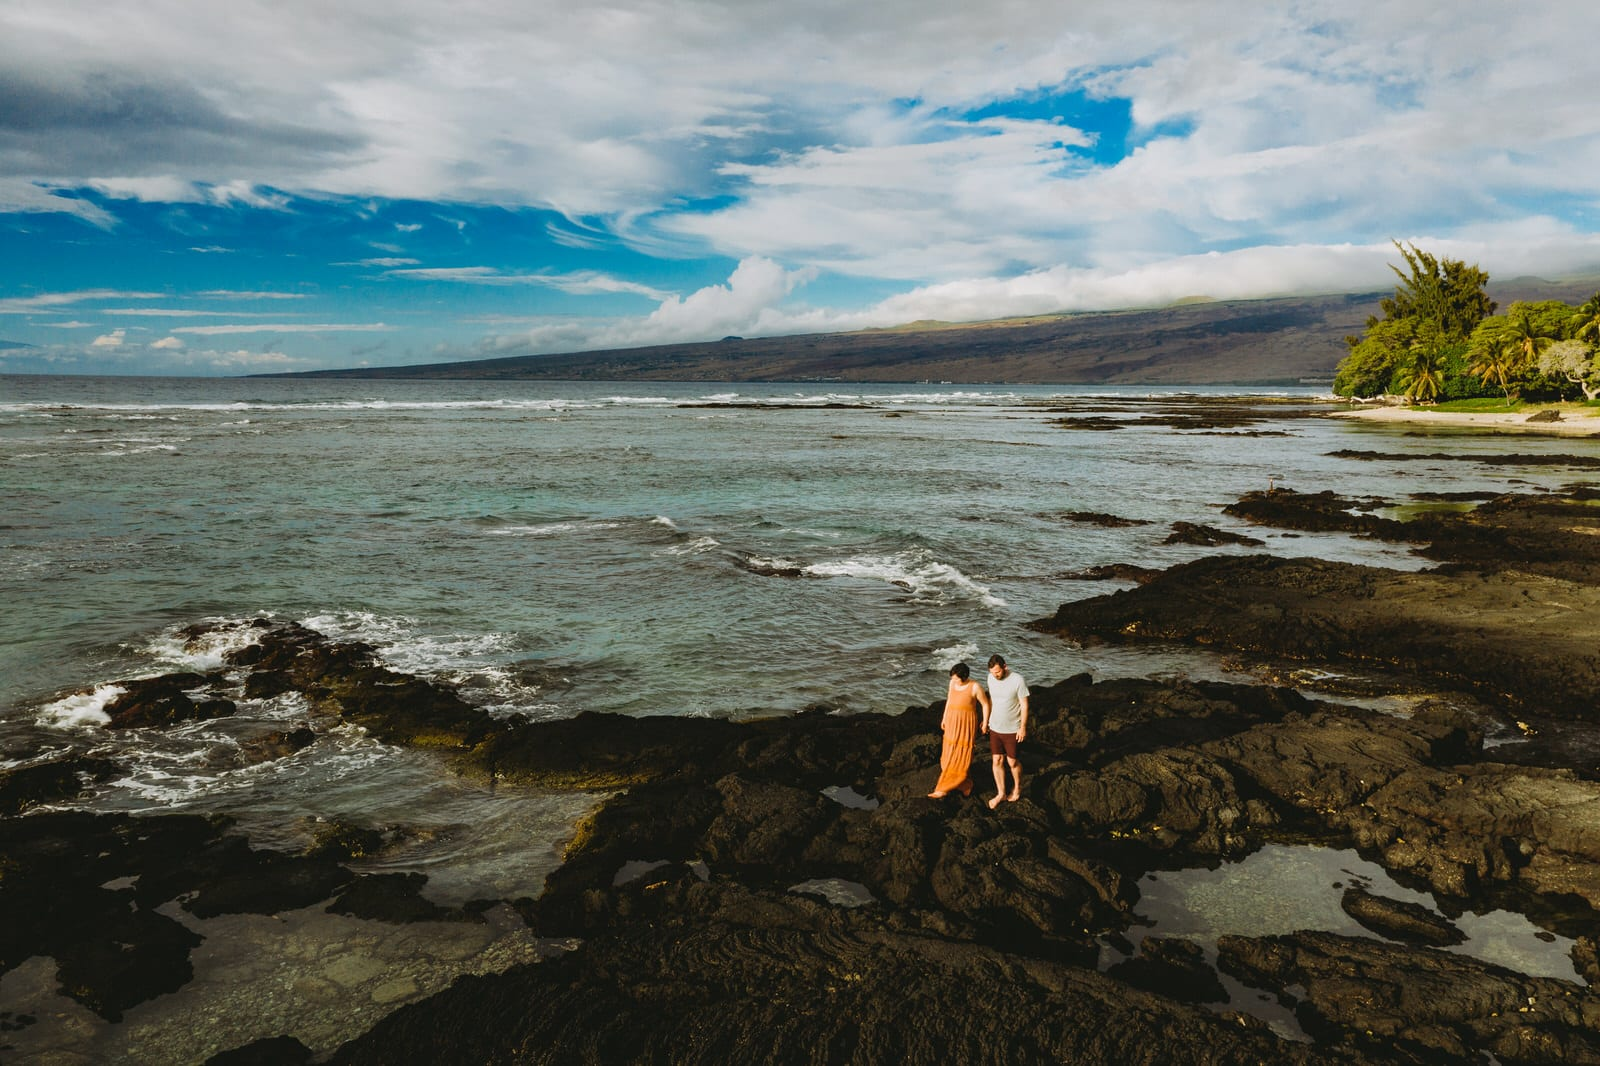 hawaii-drone-photography-professional-big-island-5.jpg